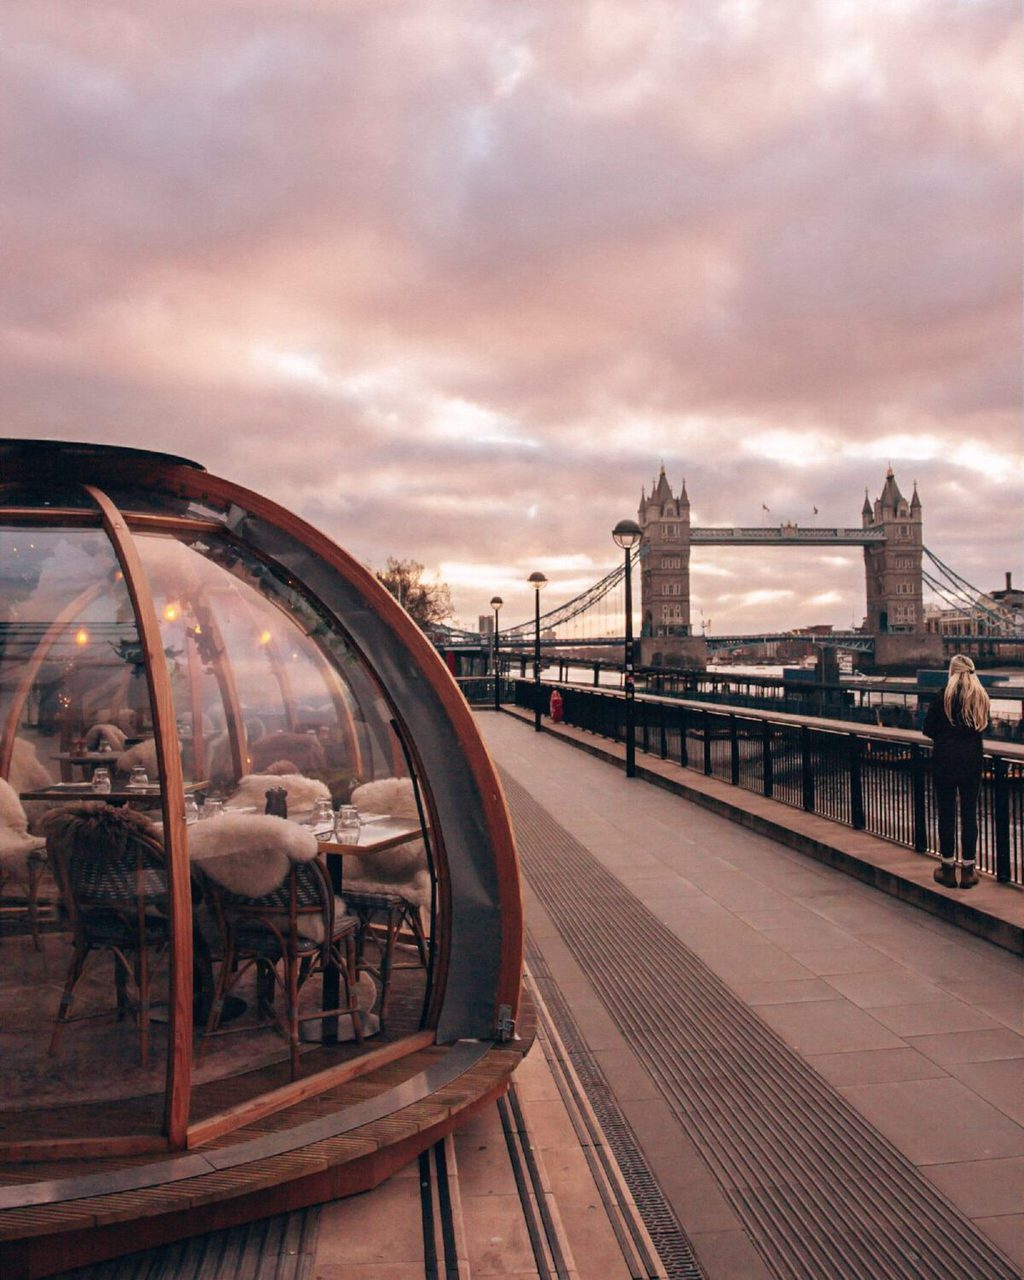 Sunrise at Coppa Club igloos Tower Bridge. Get there early to eat in the Coppa Club igloos without a reservation